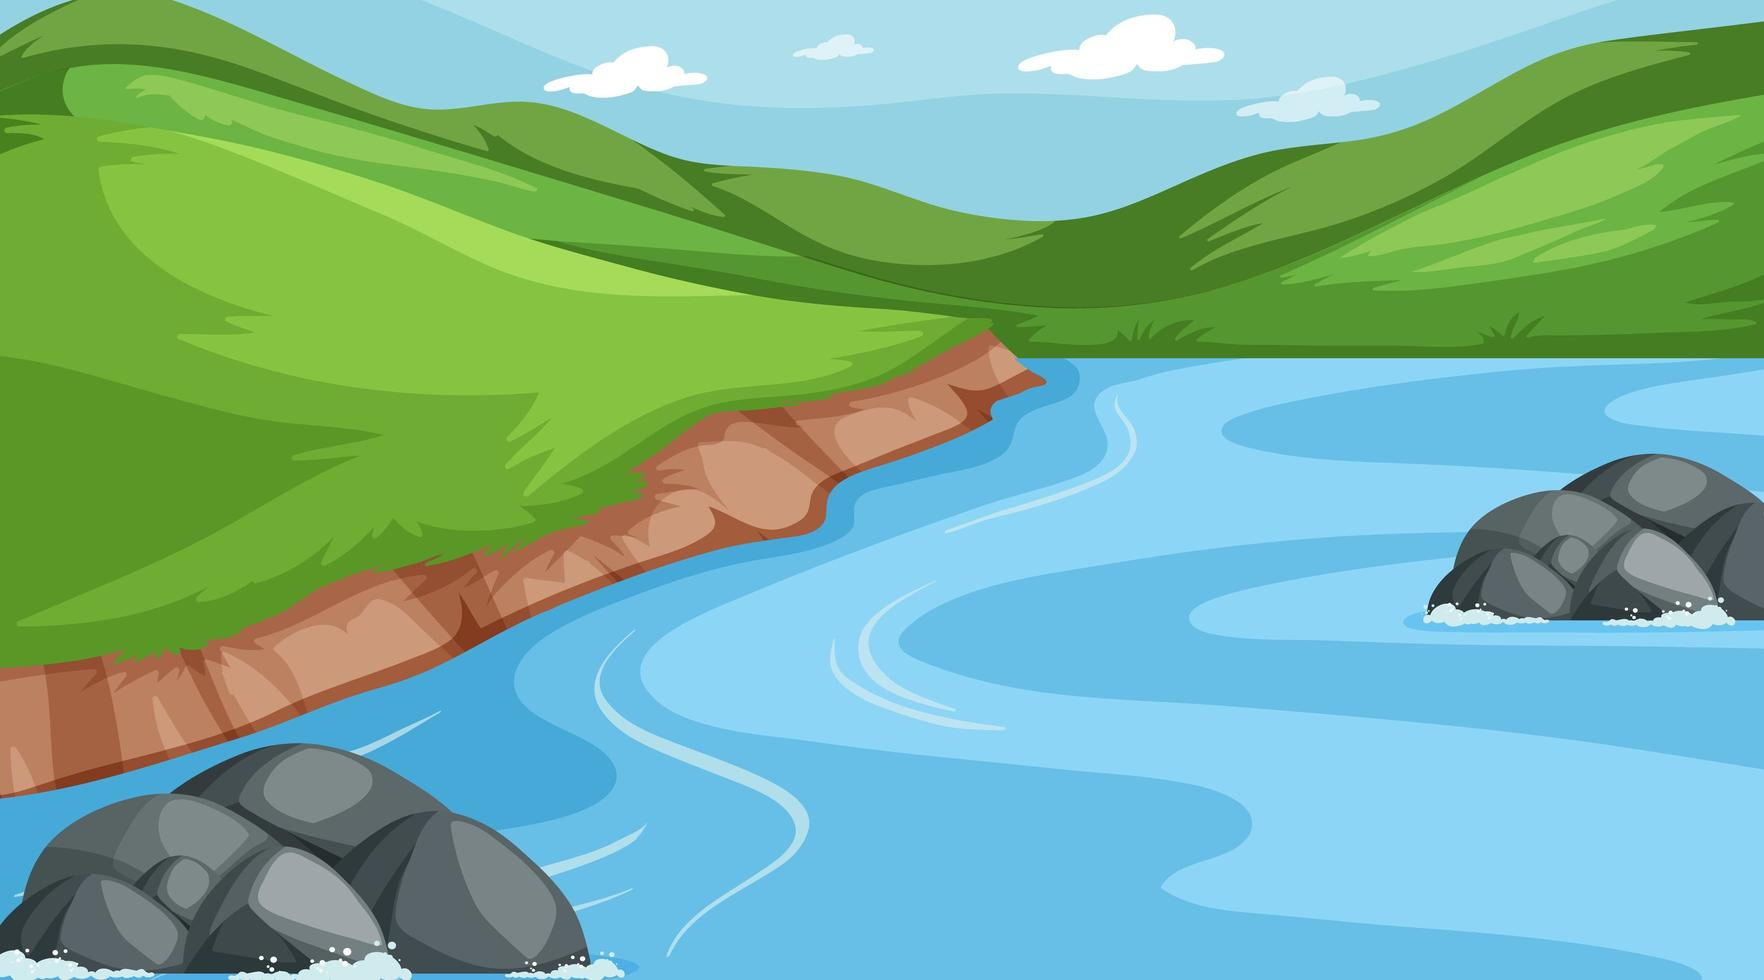 background scene of hills and river download free vectors clipart graphics vector art background scene of hills and river